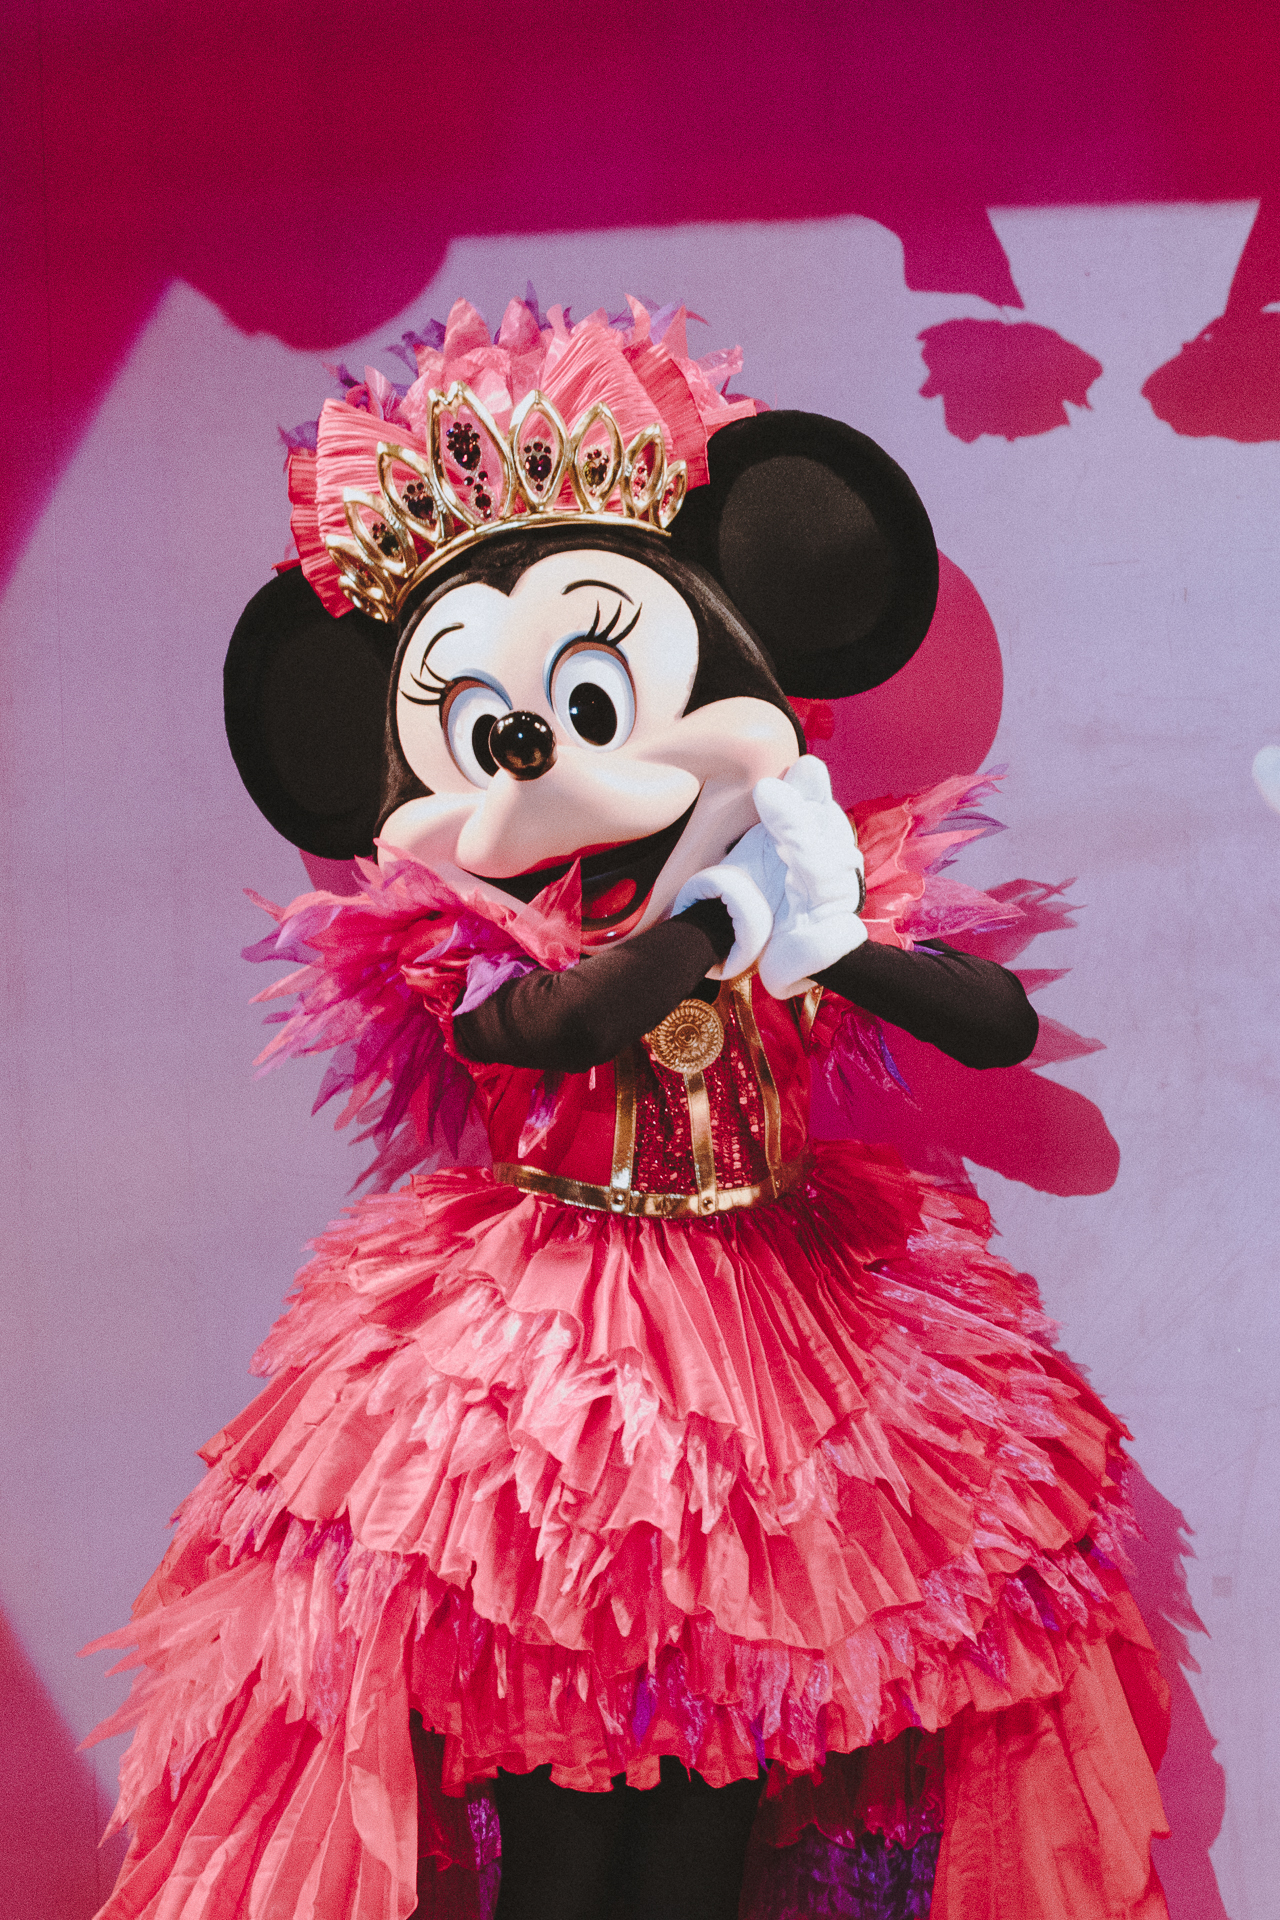 Minnie's finale dress also has a few extra embellishments toward the end. After all, it's  her  party.